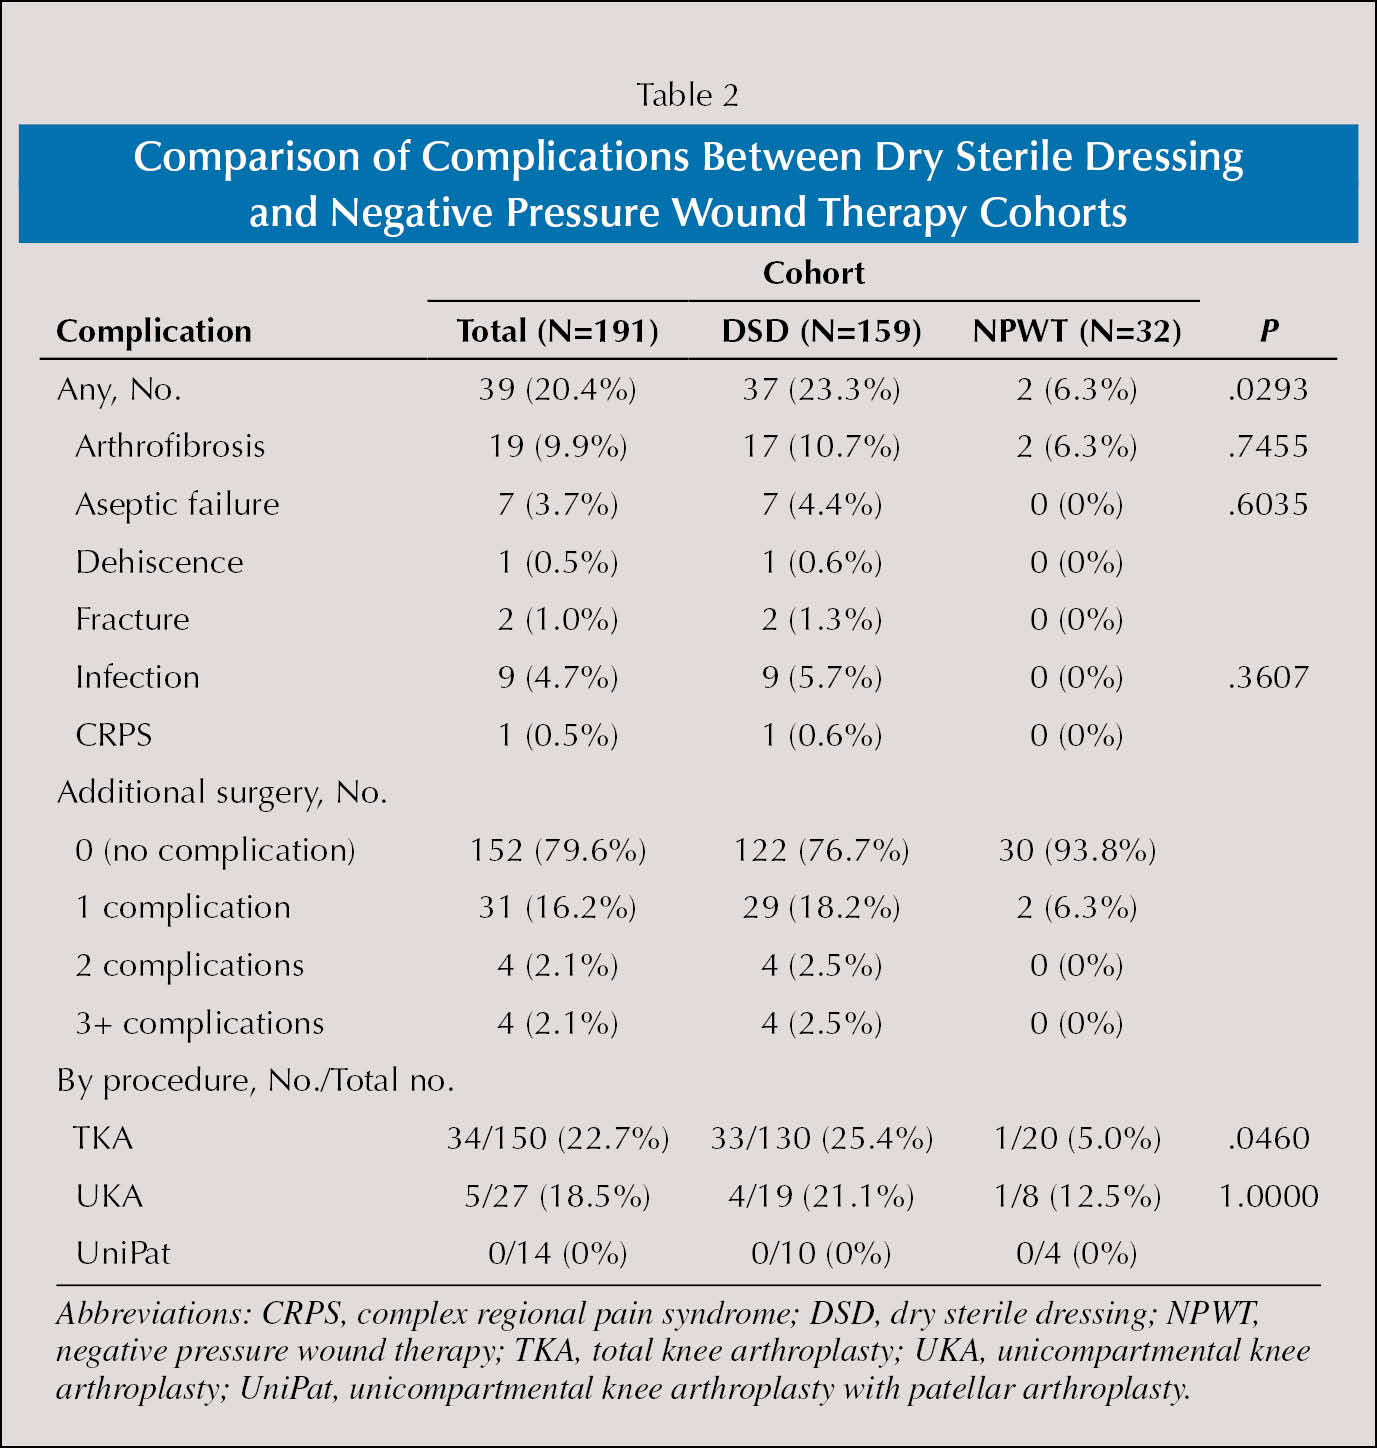 Comparison of Complications Between Dry Sterile Dressing and Negative Pressure Wound Therapy Cohorts